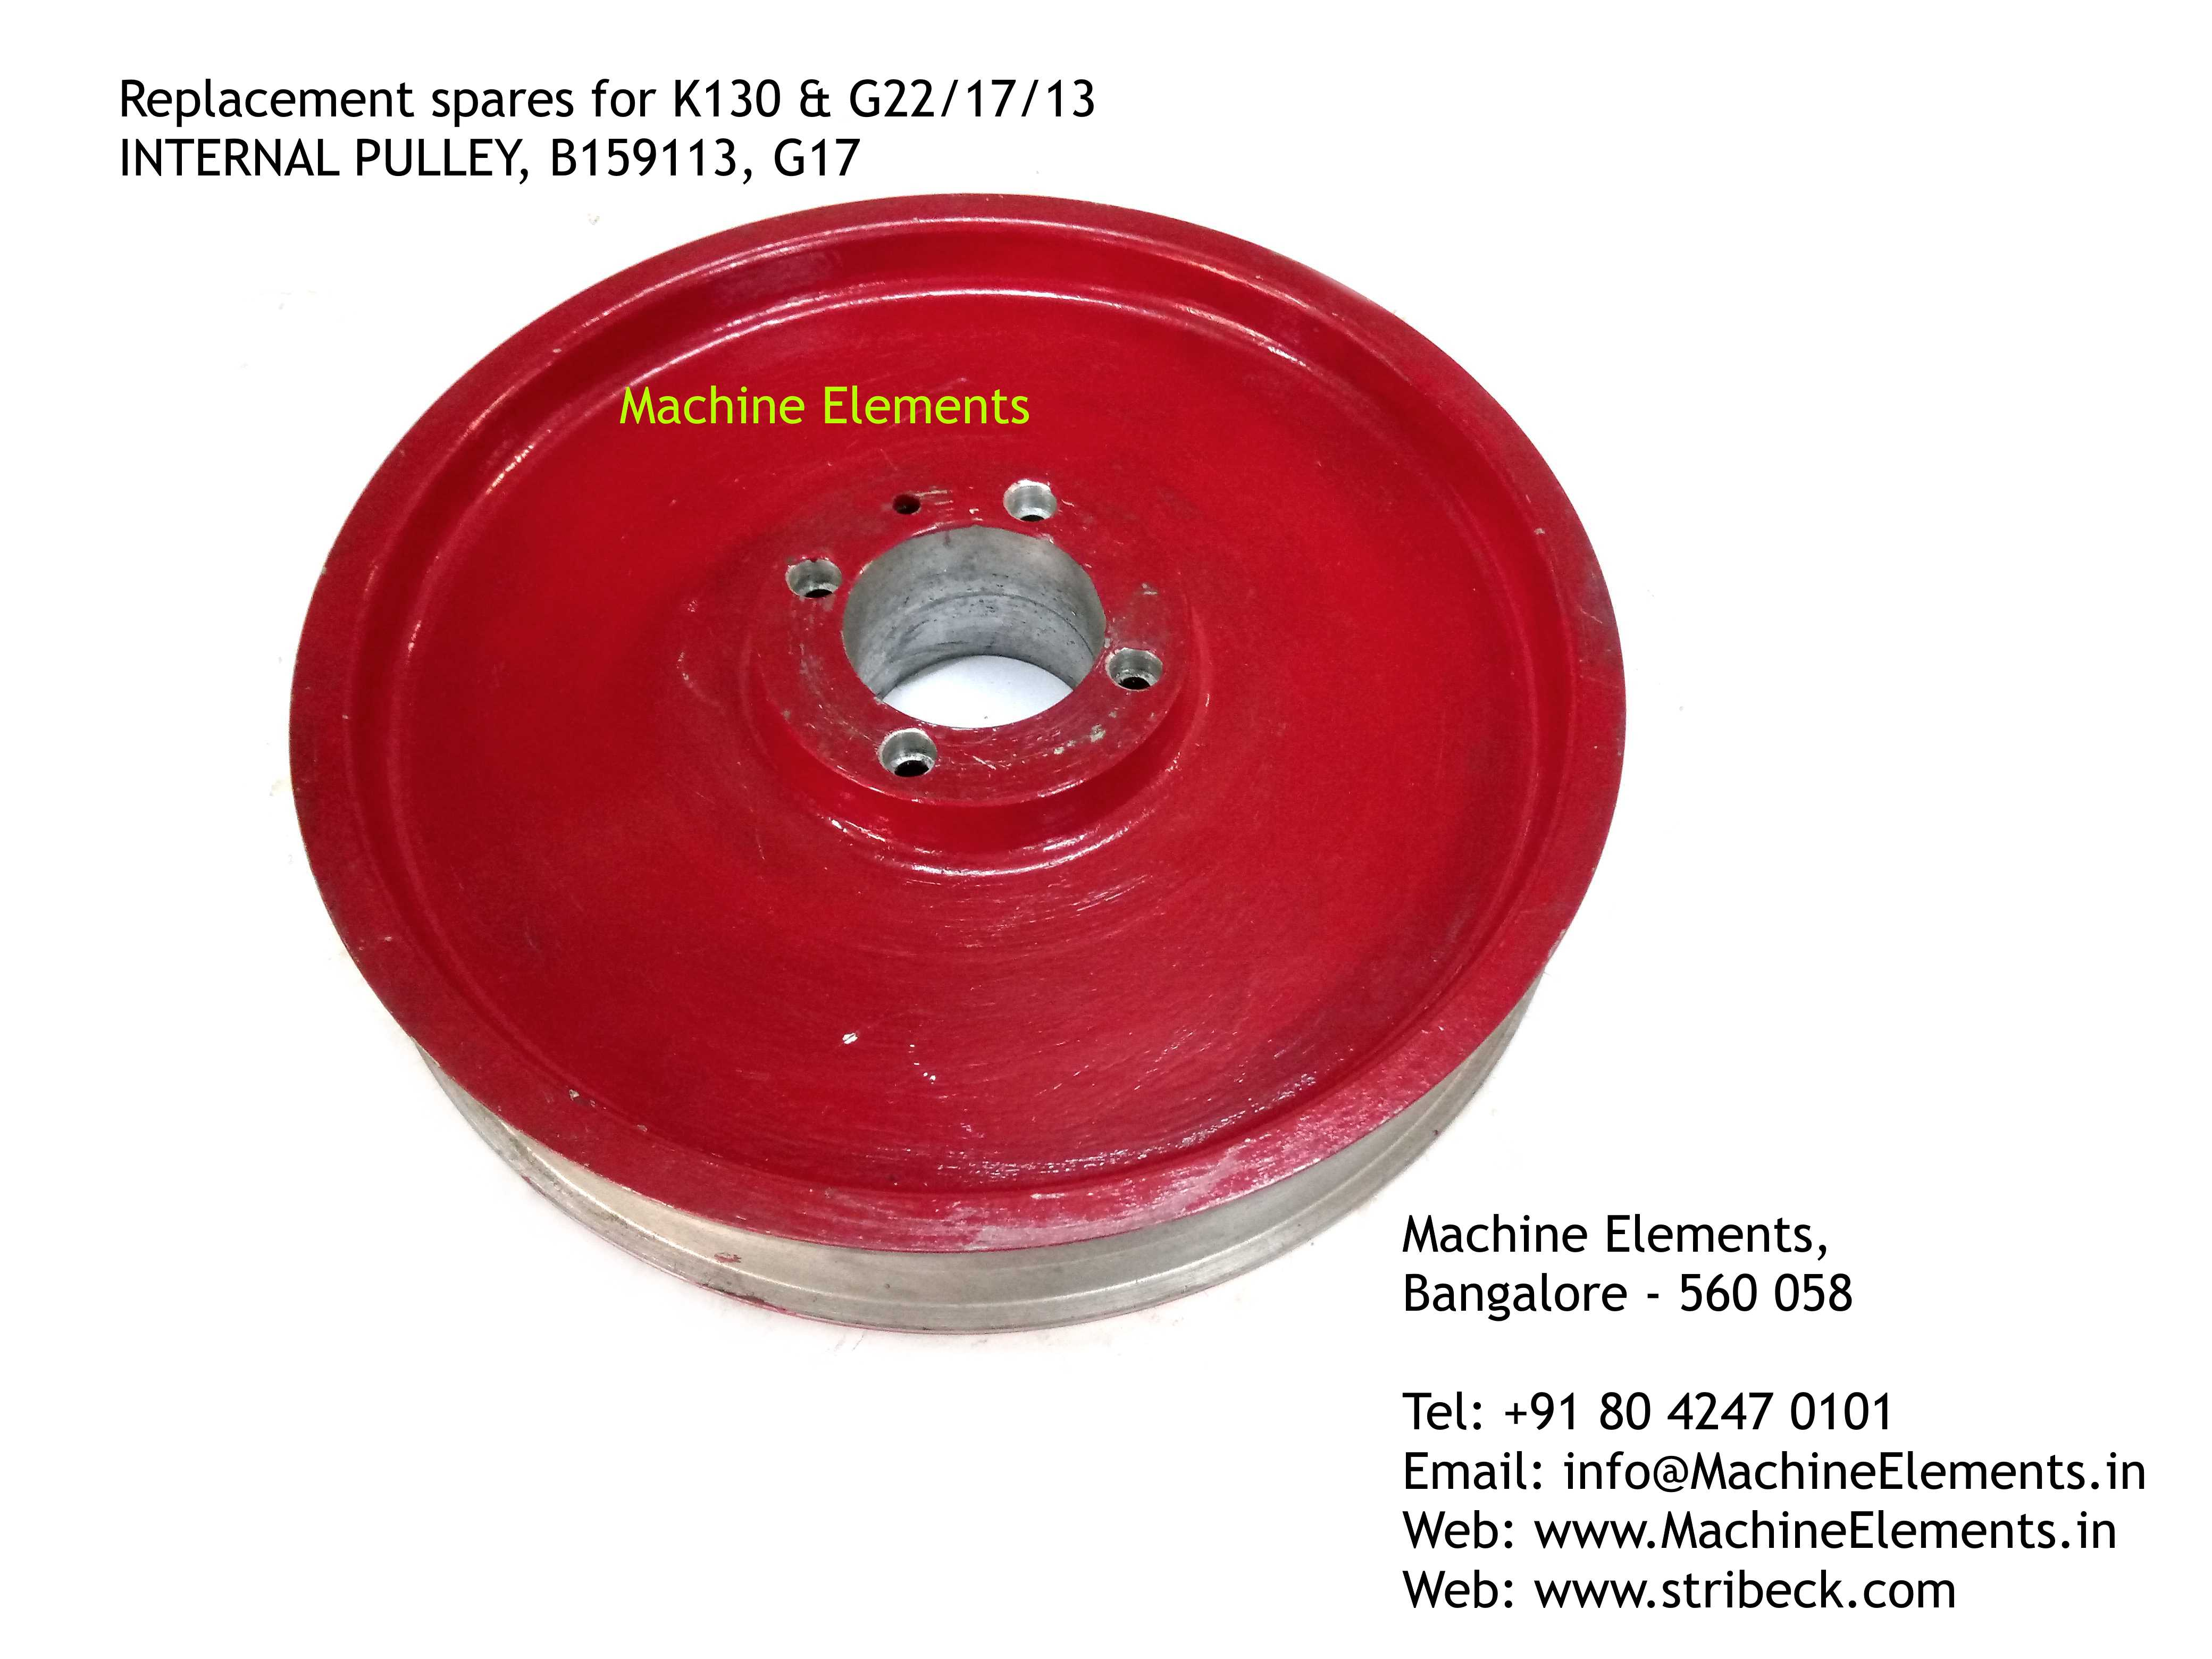 INTERNAL PULLEY, B159113, G17